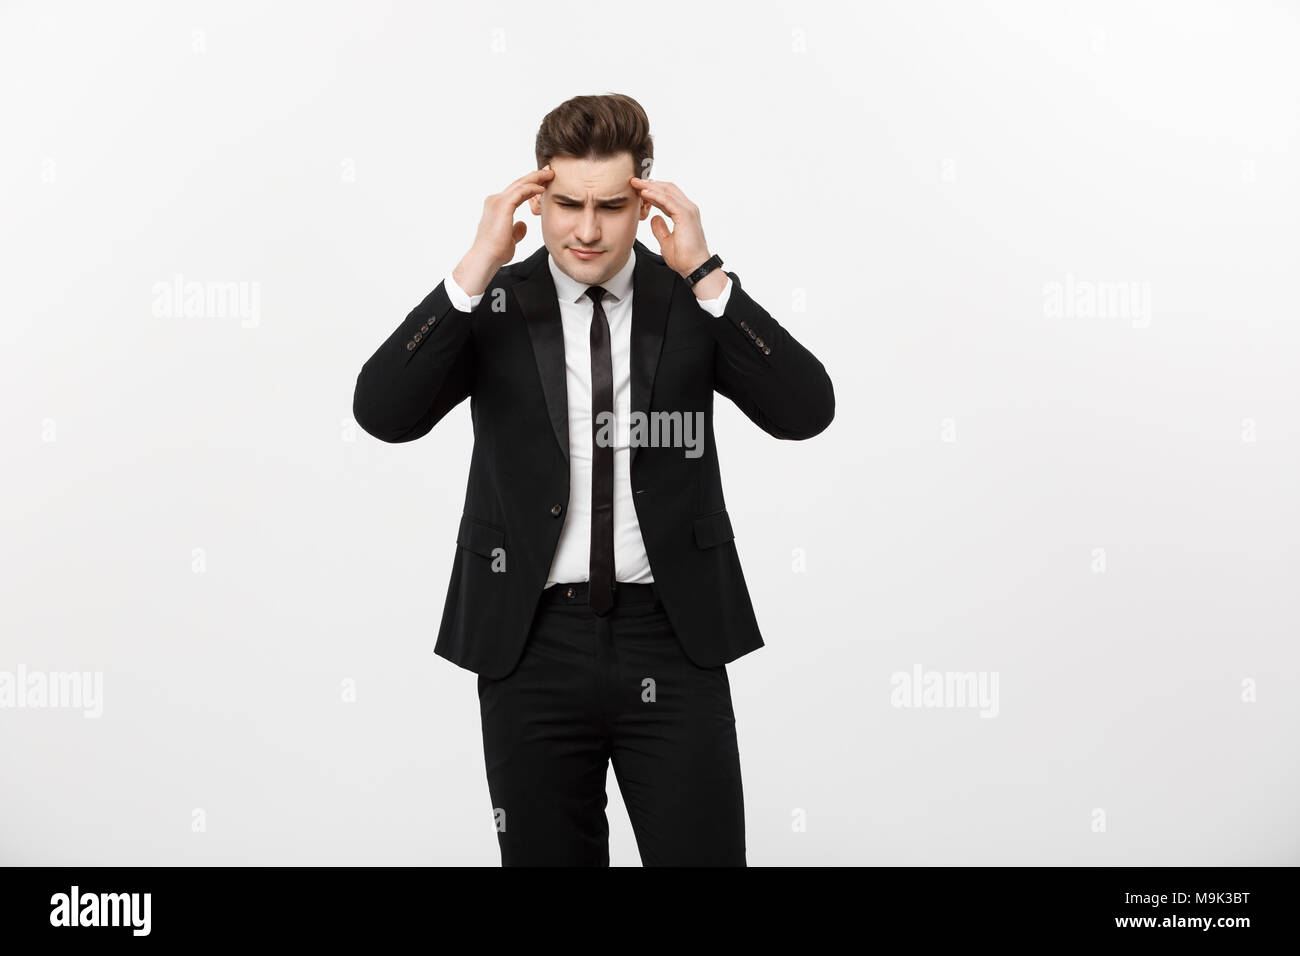 Business Concept: Young handsome businessman with pain in his temples. Photo of man suffering from stress or a headache grimacing in pain. - Stock Image